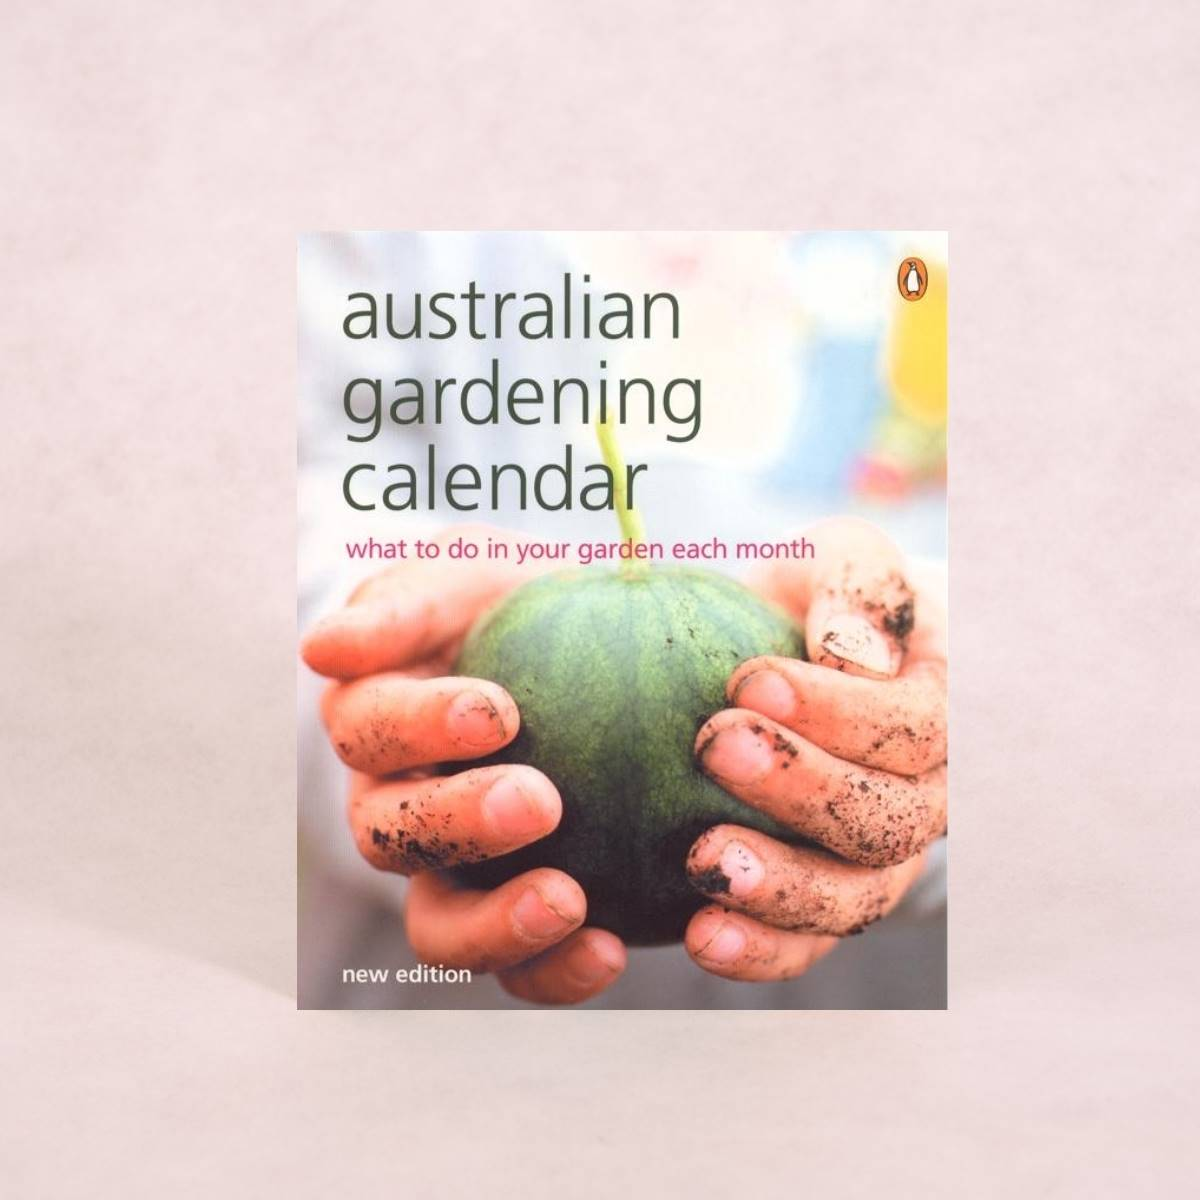 Australian Gardening Calendar - What to do in your garden each month | By Penguin - Book - Throw Some Seeds - Australian gardening gifts and eco products online!